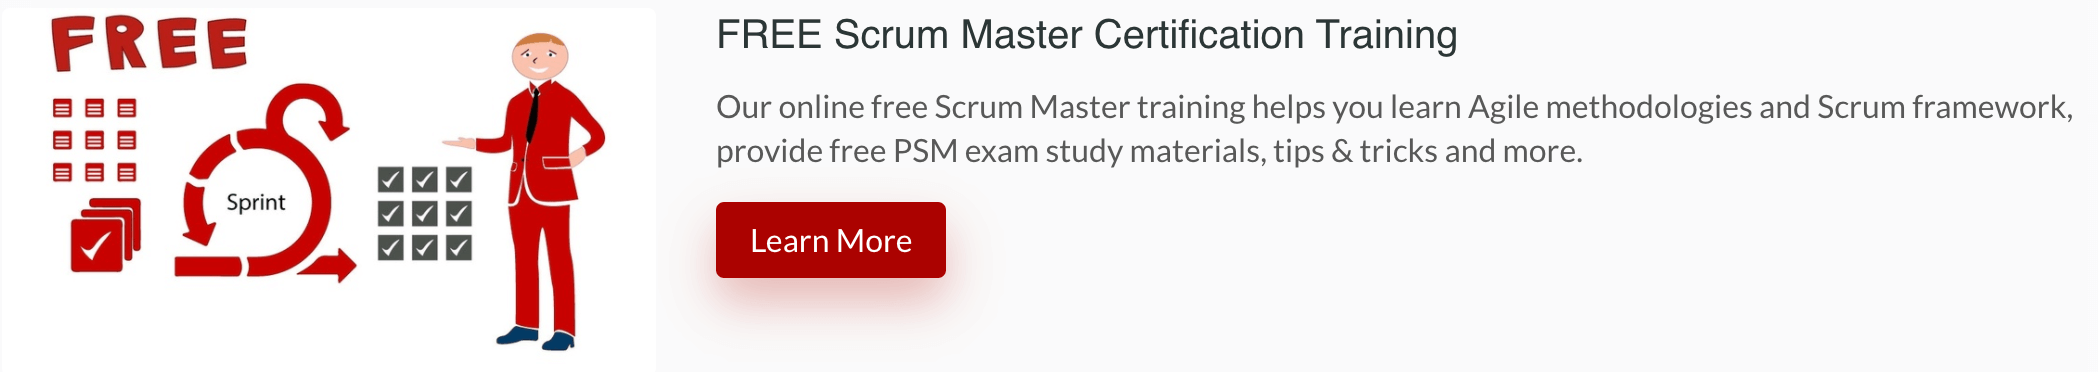 Screen-Shot-2020-07-21-at-17.06.25 Scrum Master Certification Online - Incl. 100% FREE Course Links